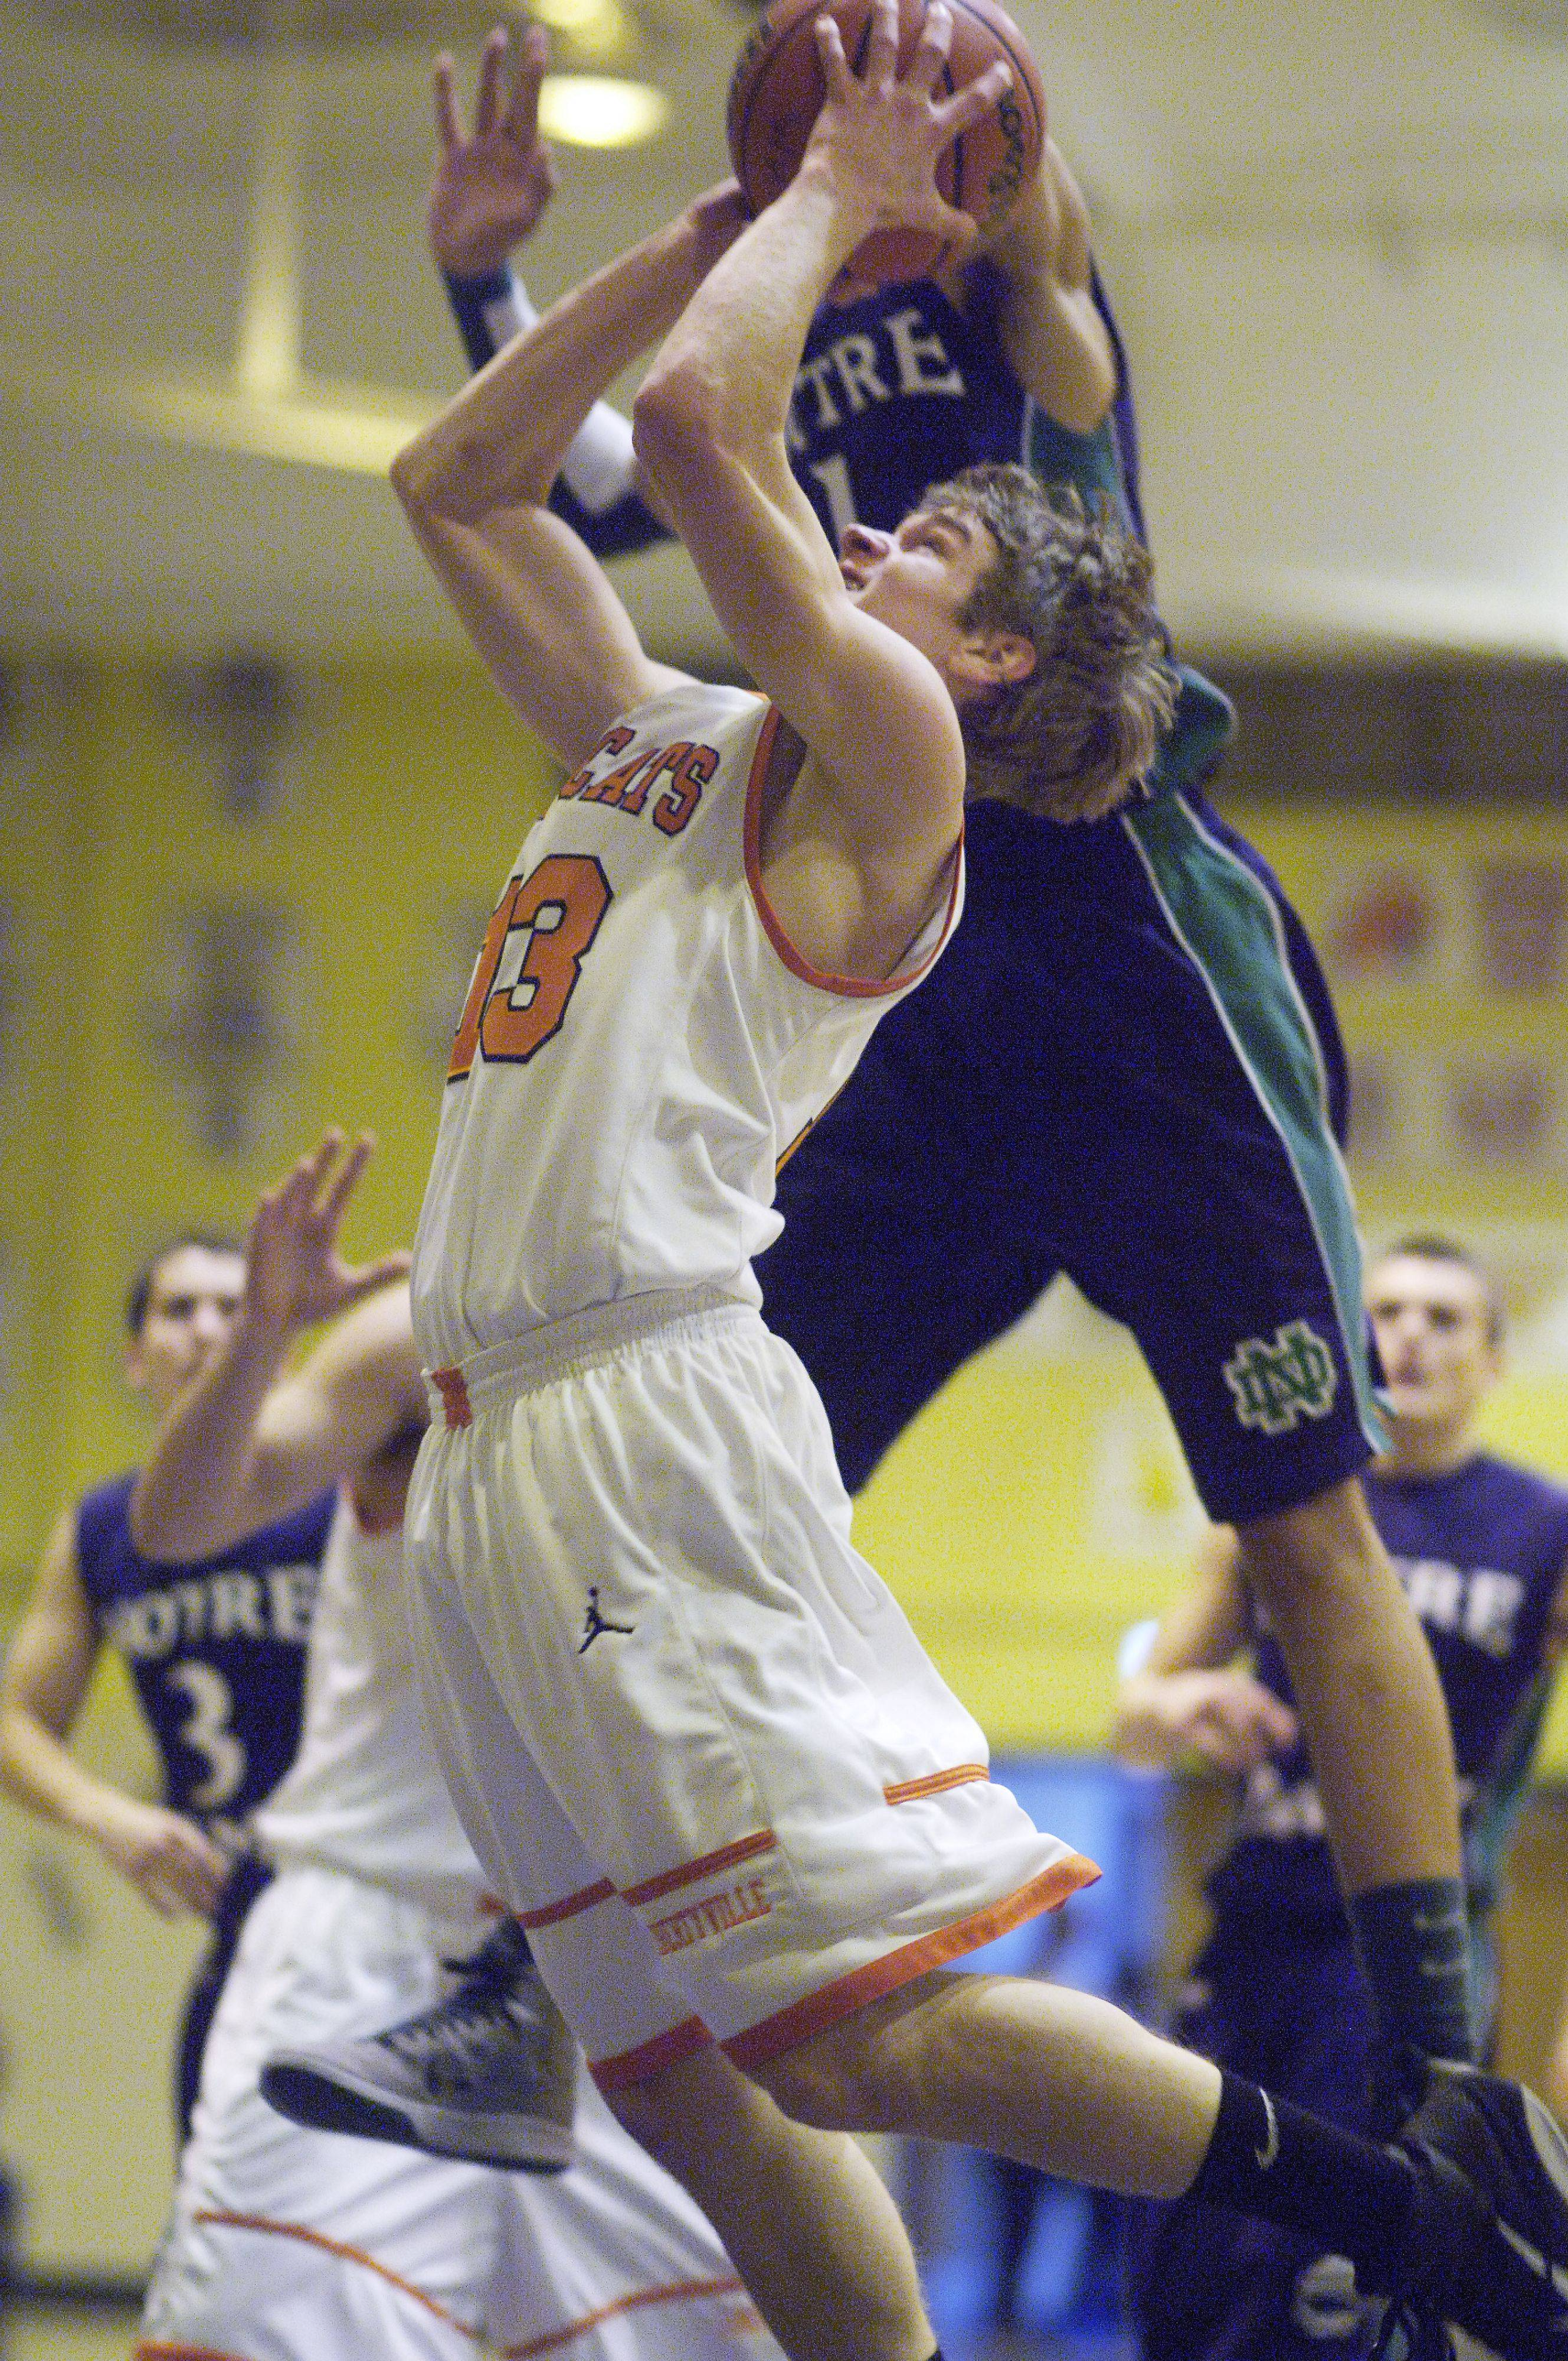 Libertyville's Anthony Mack meets Notre Dame's Quinton Chievous at the basket during the Wheeling Tournament Wednesday.